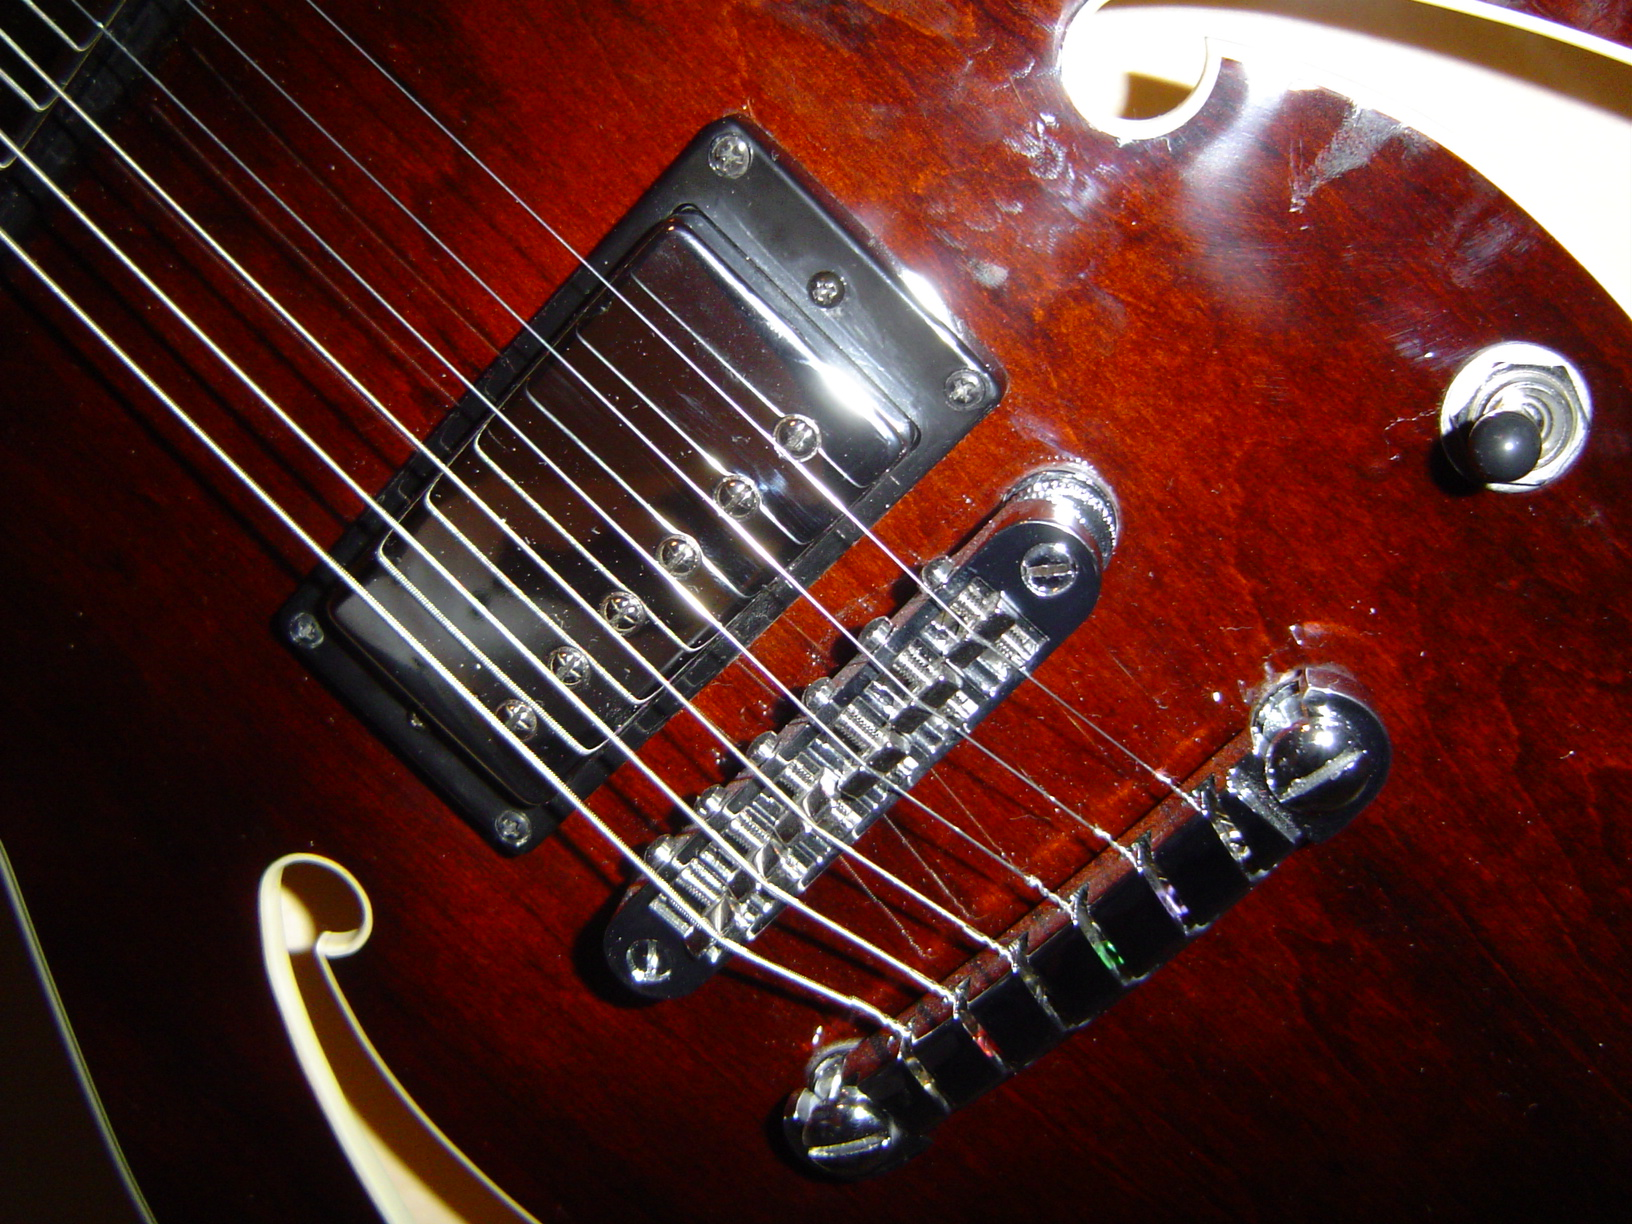 file ibanez artcore am or as bridge and tailpiece